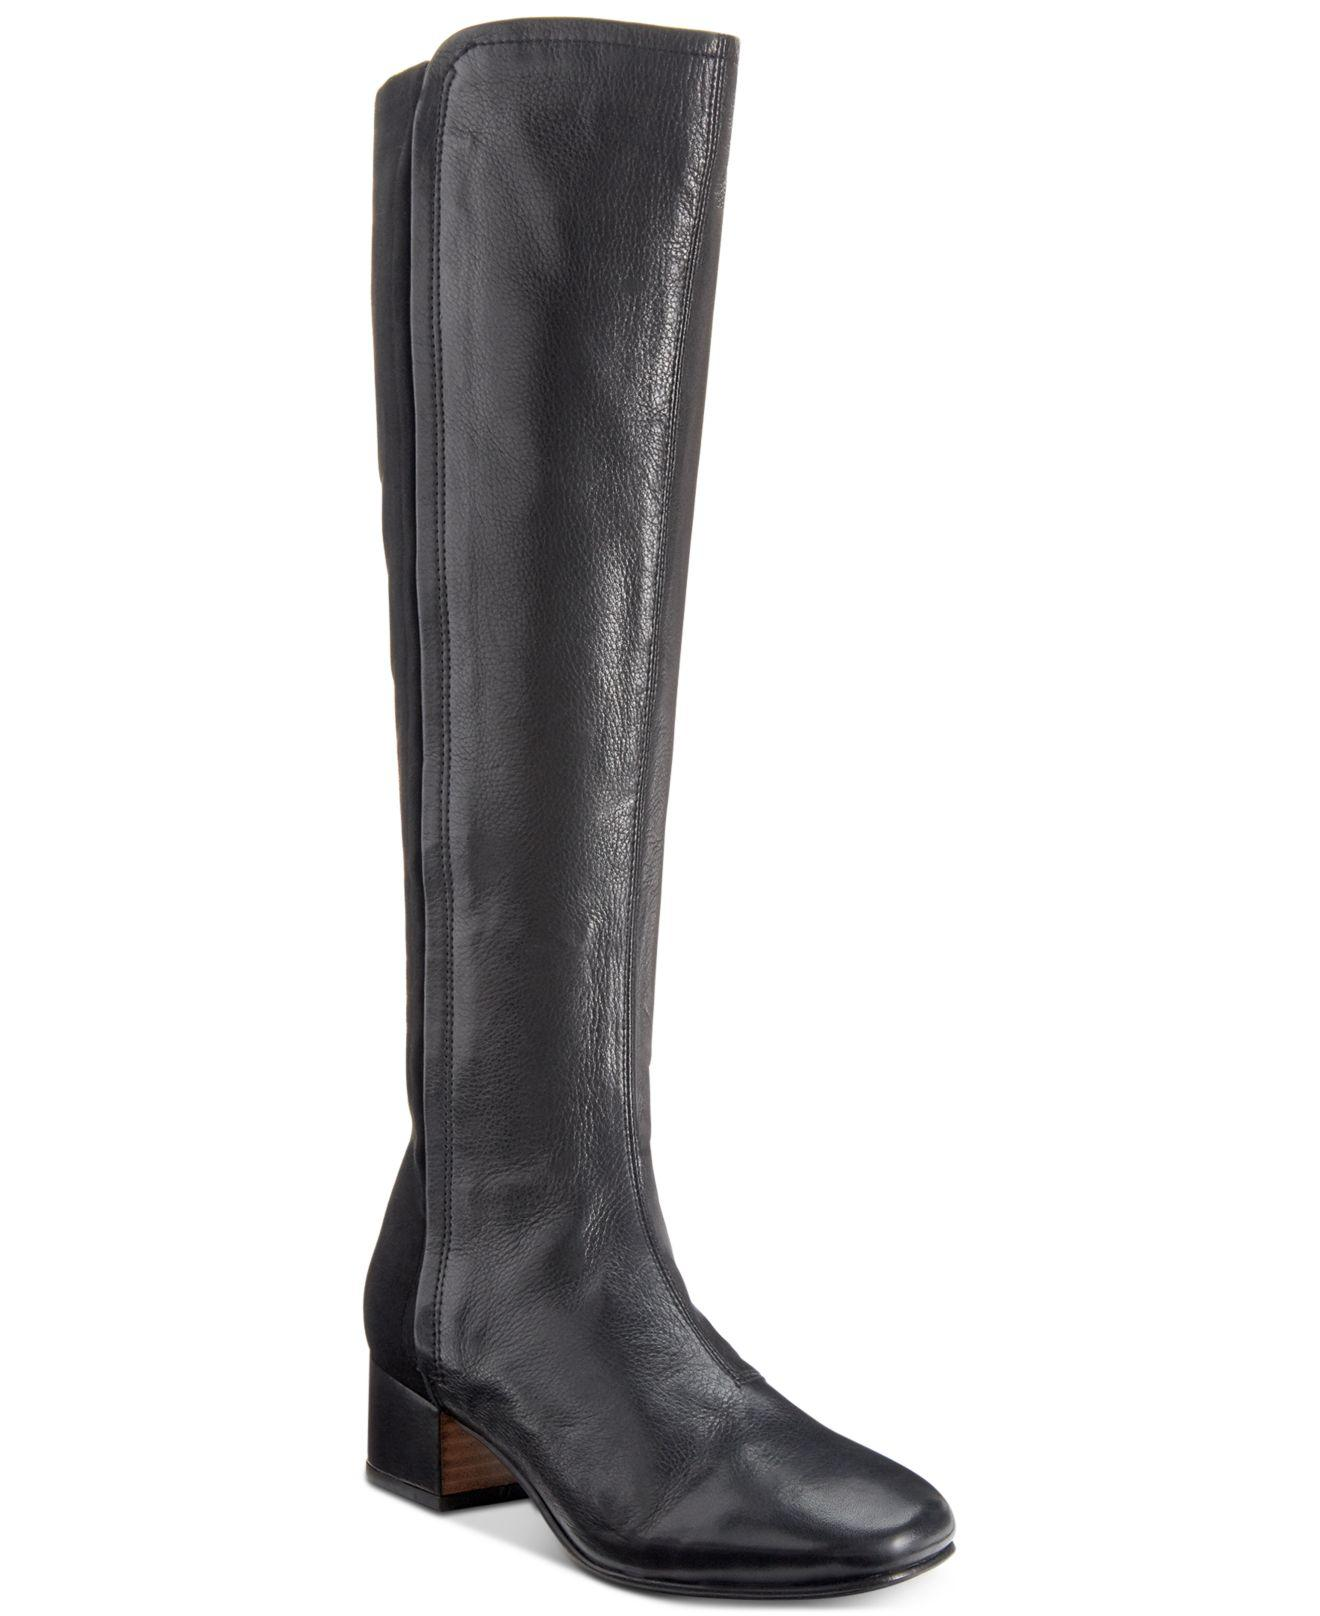 bcebede1d73056 Lyst - Gentle Souls By Kenneth Cole Ella-seti Boots in Black